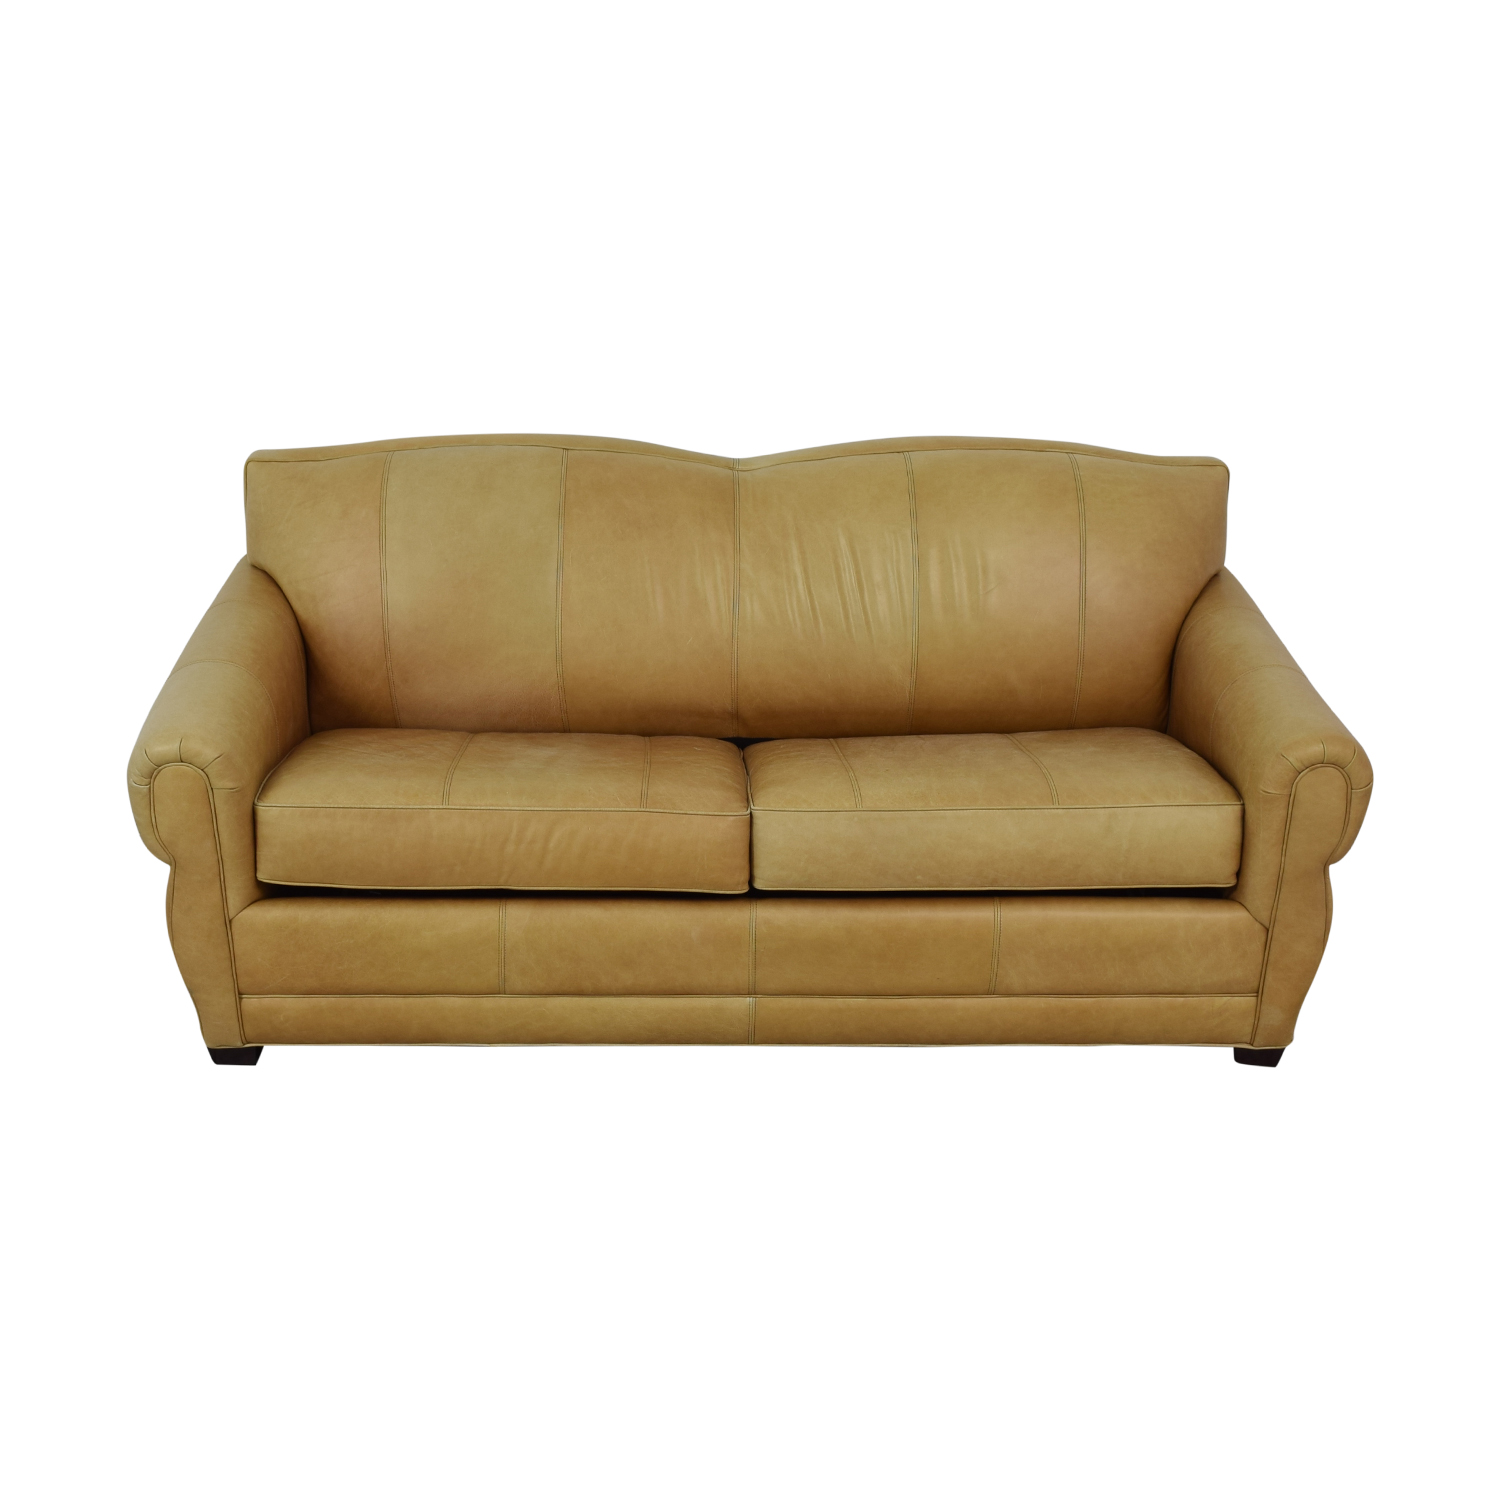 Thomasville Queen Sleeper Sofa / Sofas